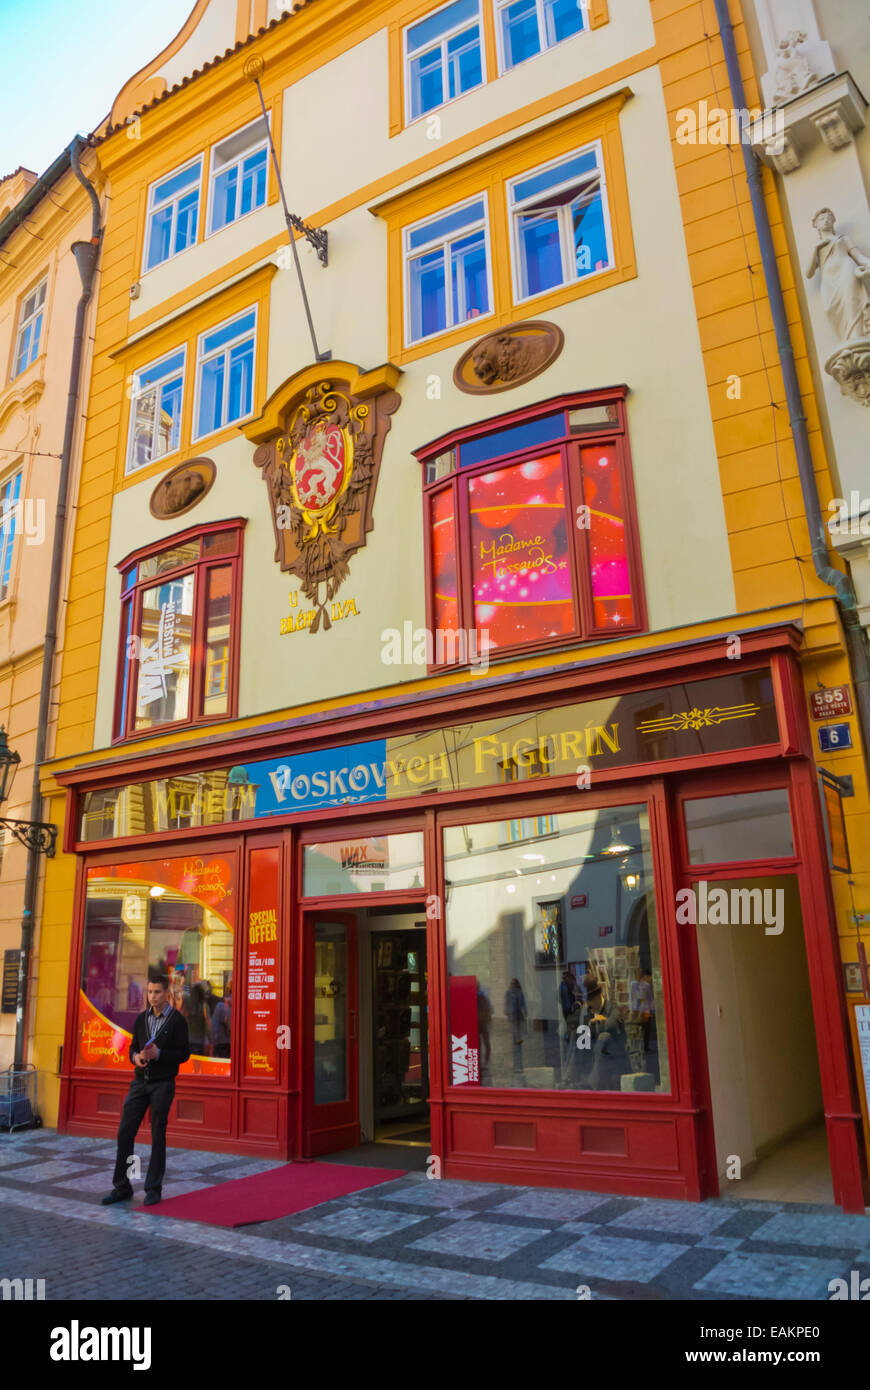 Madame Tussaud, Wax cabinet, Celetna street old town, Prague, Czech Republic, Europe - Stock Image